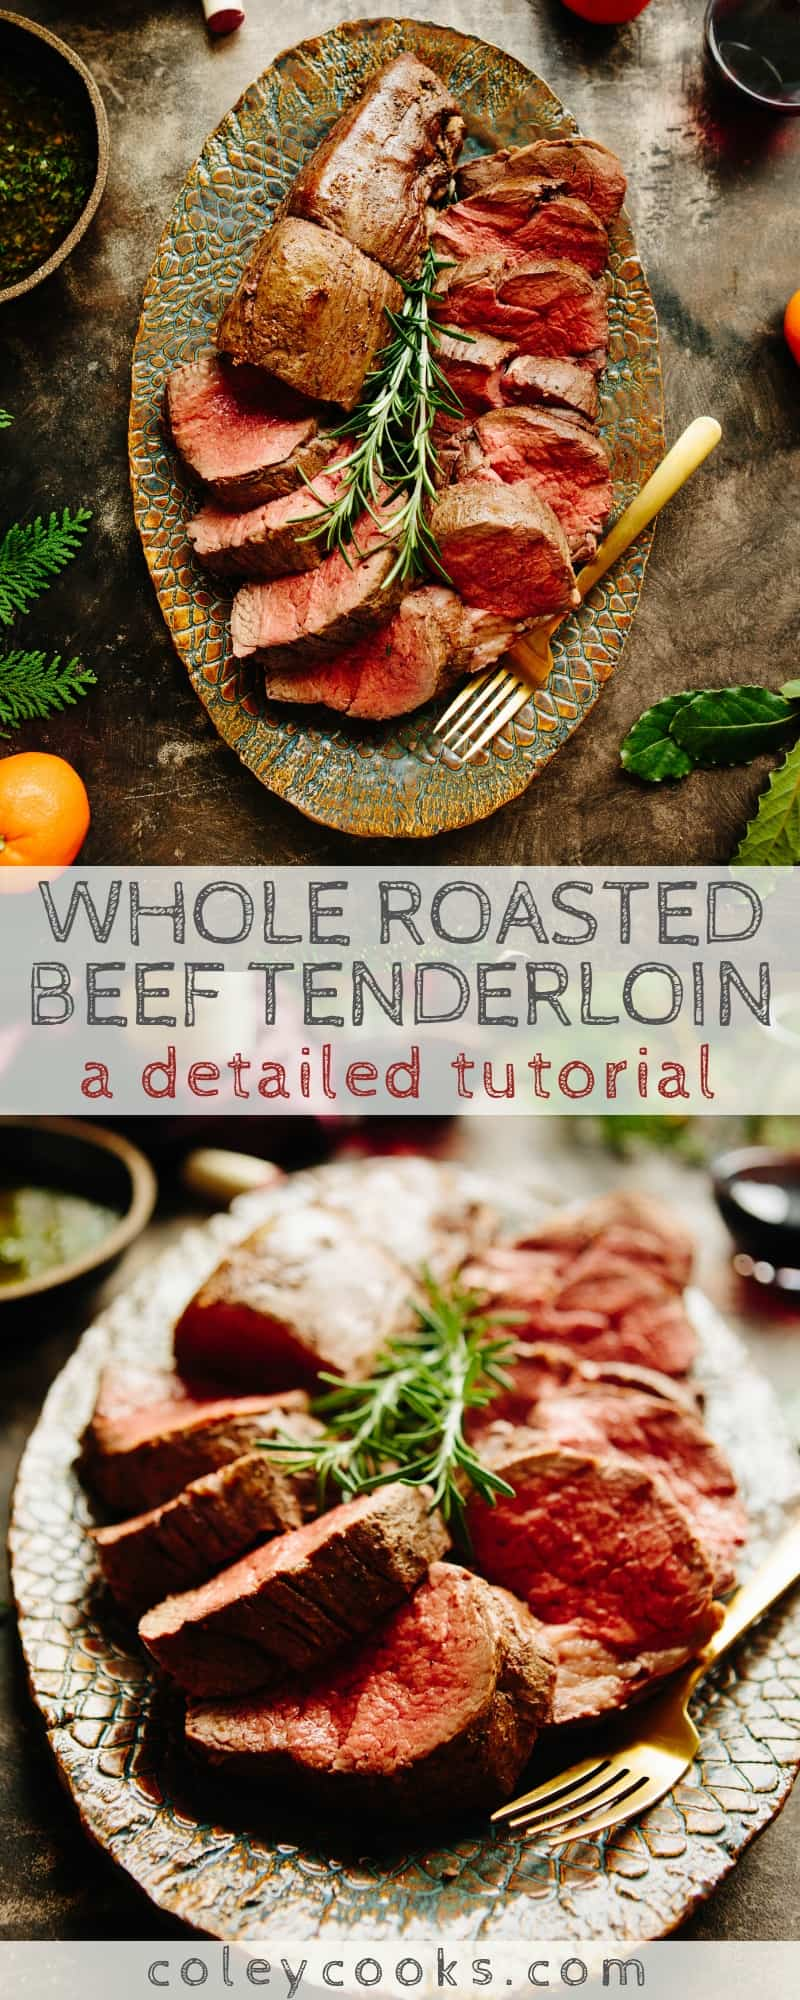 WHOLE ROASTED BEEF TENDERLOIN   Detailed tutorial on how to roast a whole beef tenderloin (filet mignon) with wine pairings and serving ideas! Perfect for holiday entertaining #meat #beef #filetmignon #tenderloin #easy #foolproof #recipe   ColeyCooks.com